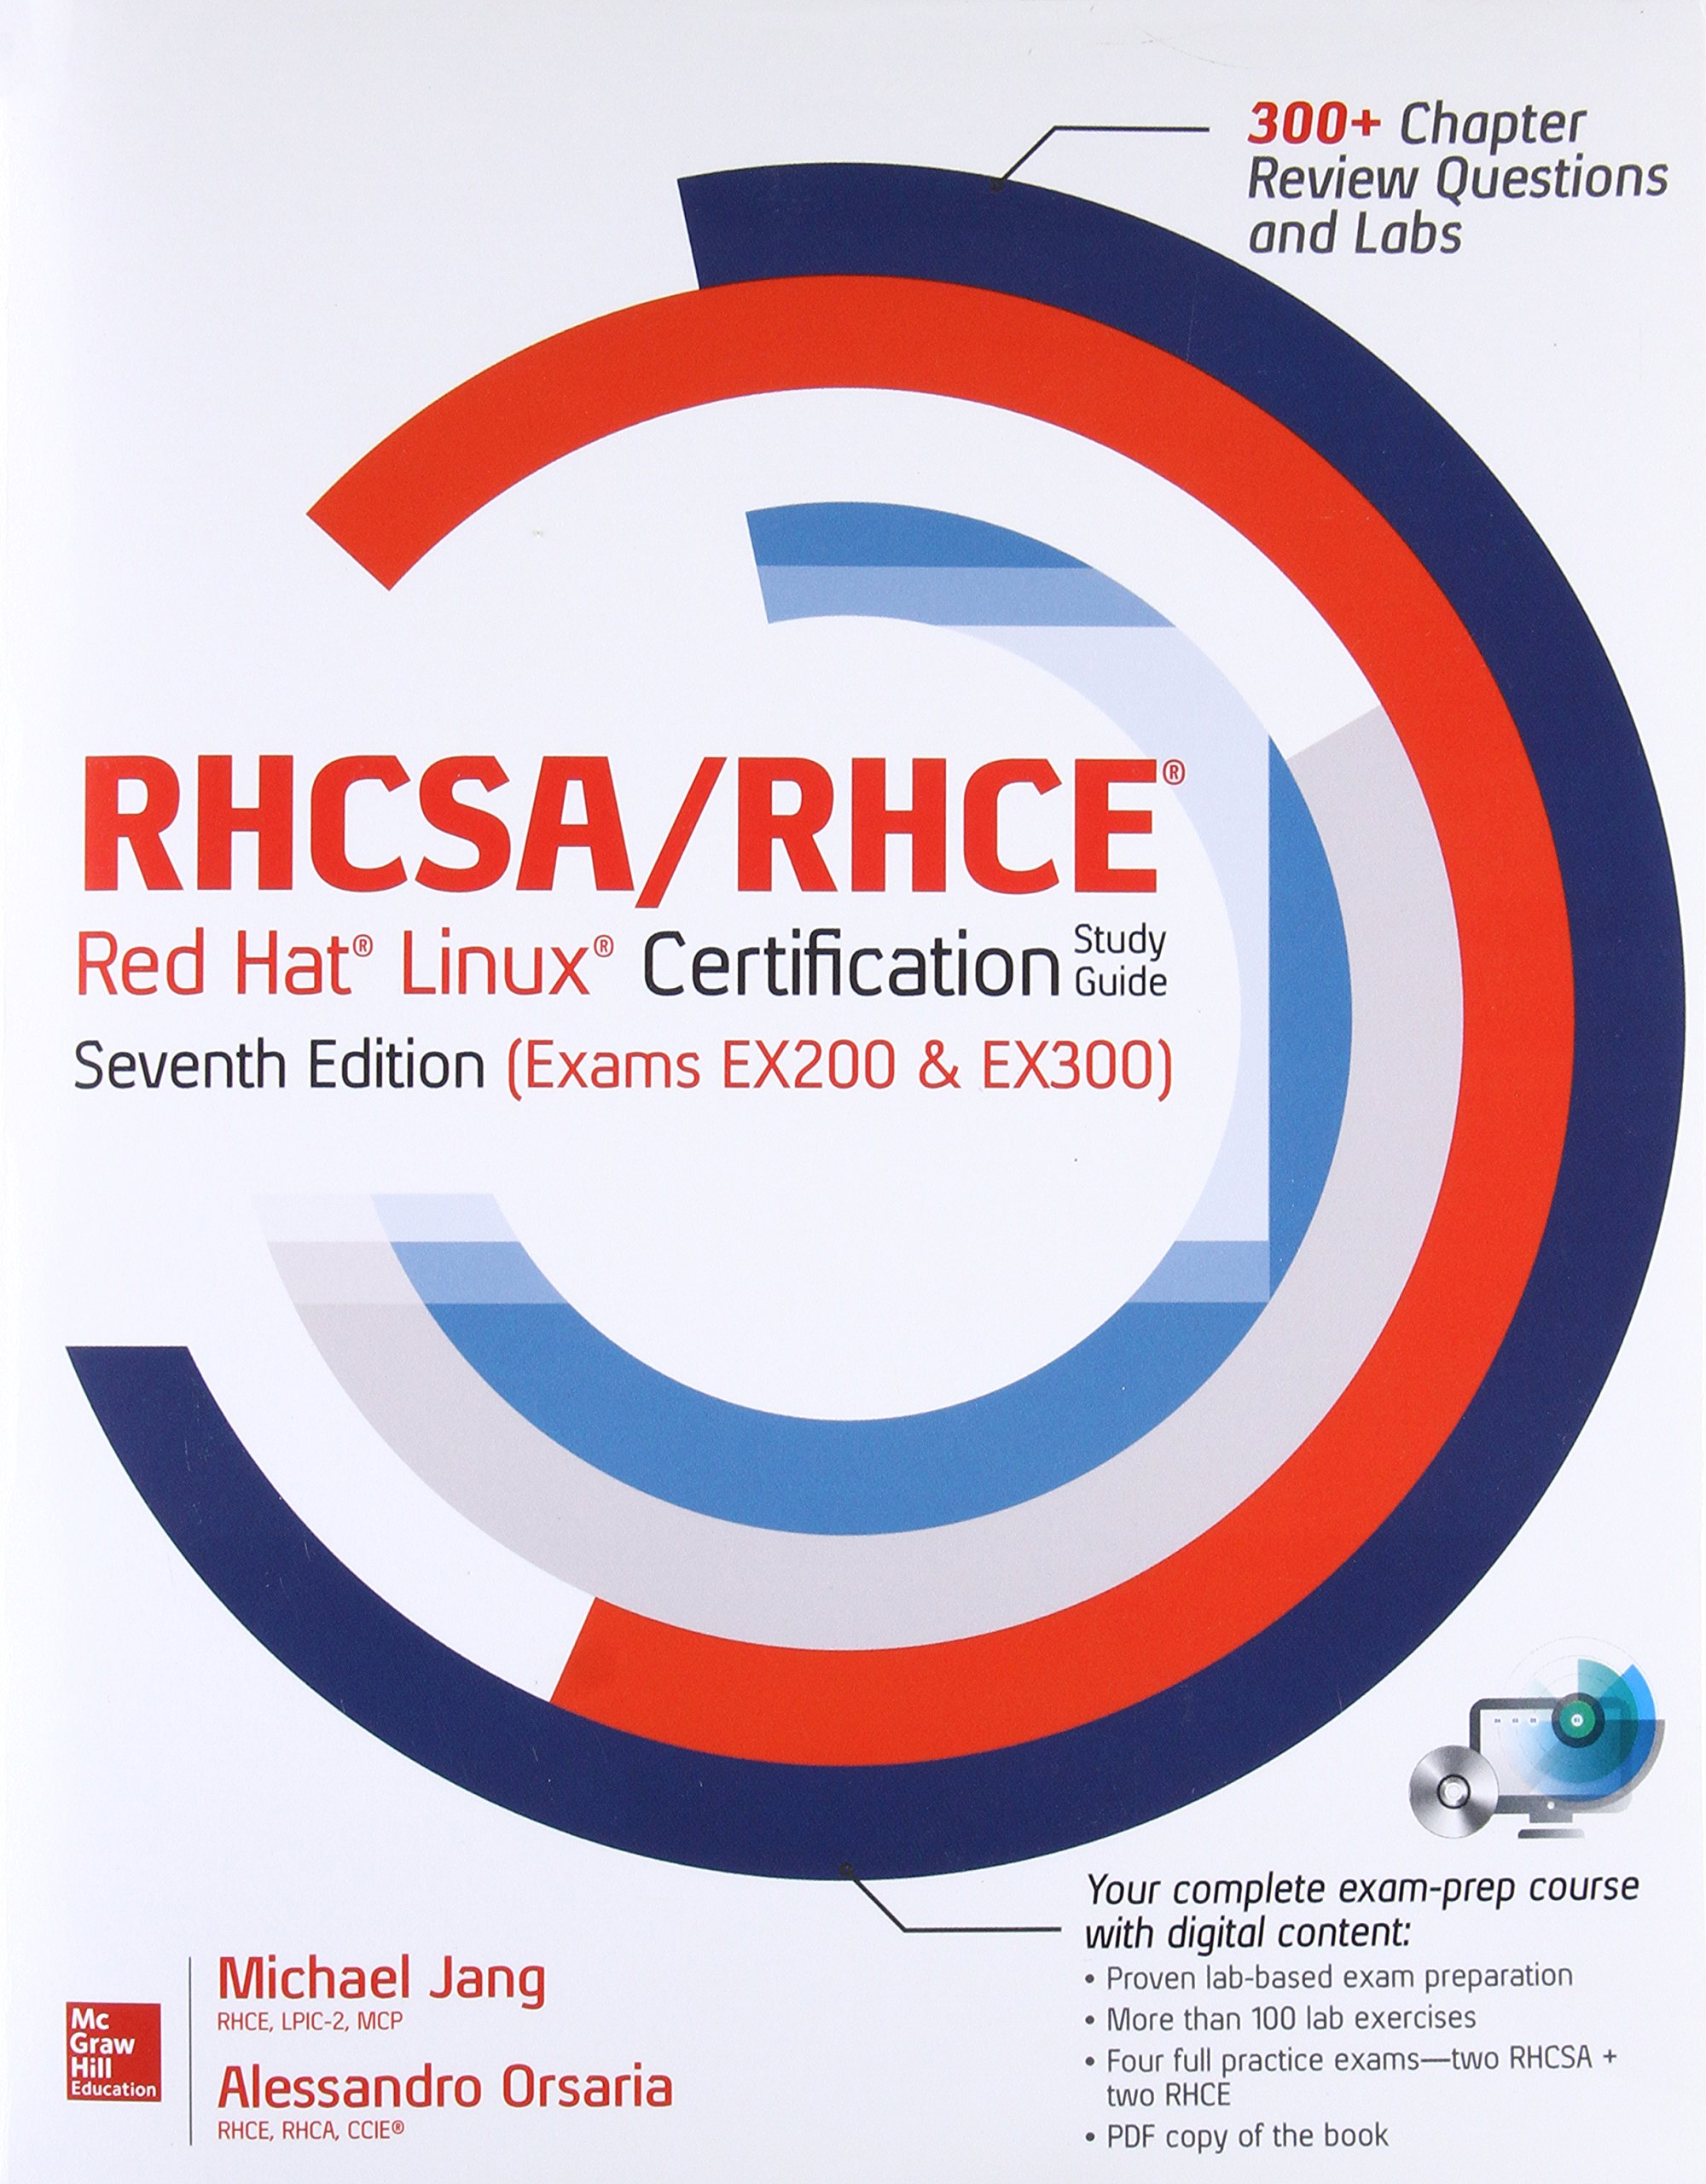 RHCSA/RHCE Red Hat Linux Certification Study Guide, Seventh Edition (Exams EX200 & EX300) by McGraw-Hill Education